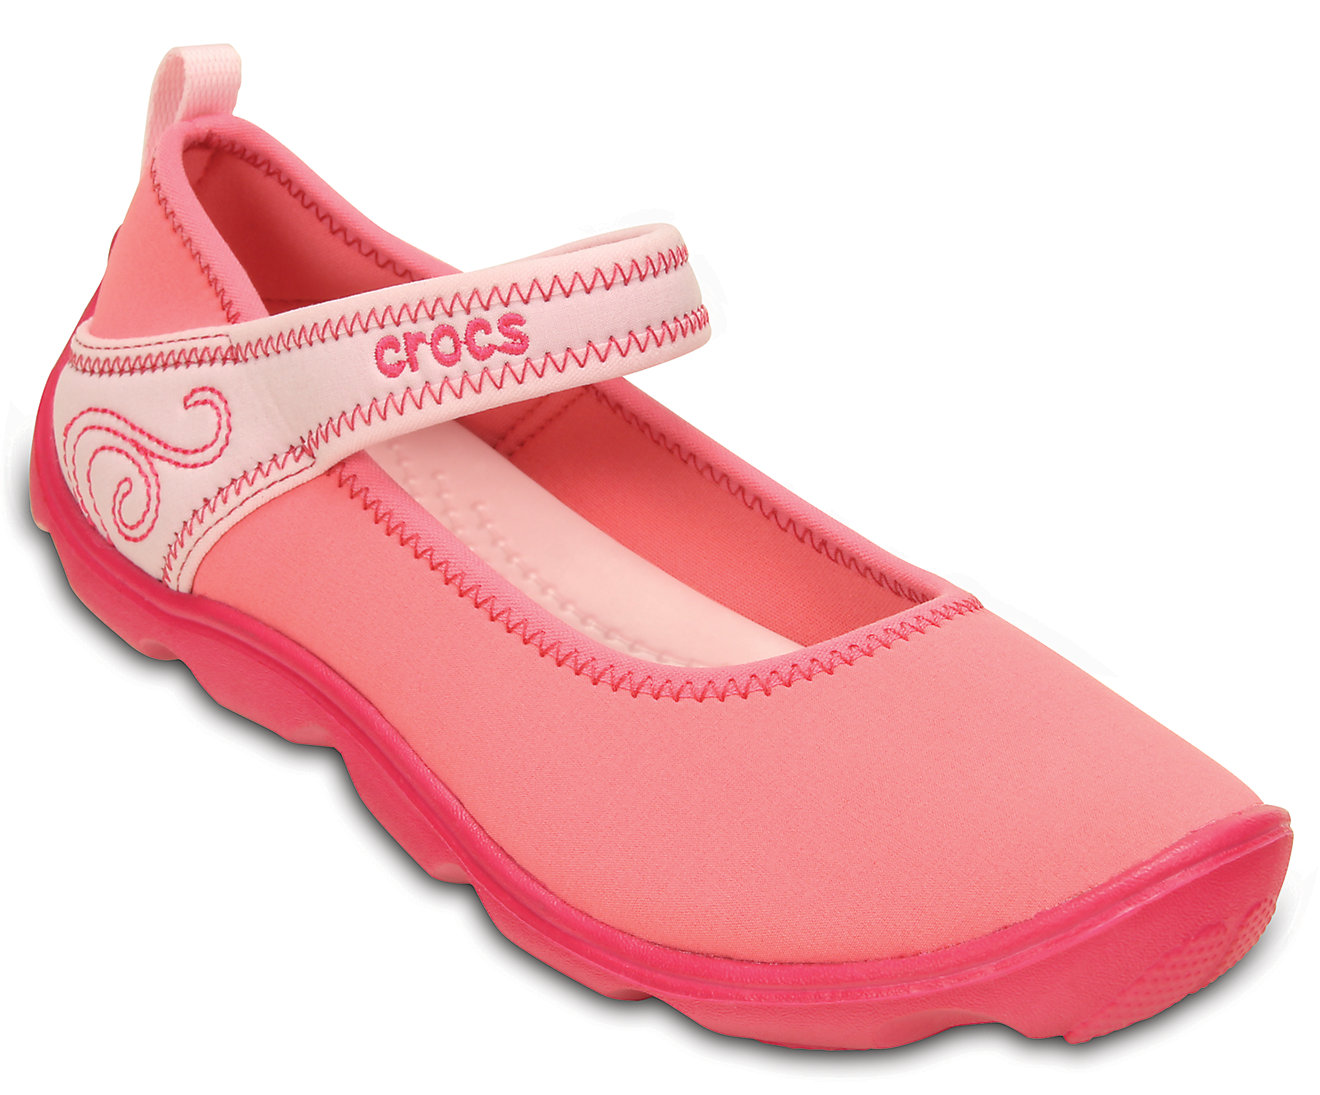 Crocs: 25% Off for Back to Sch...